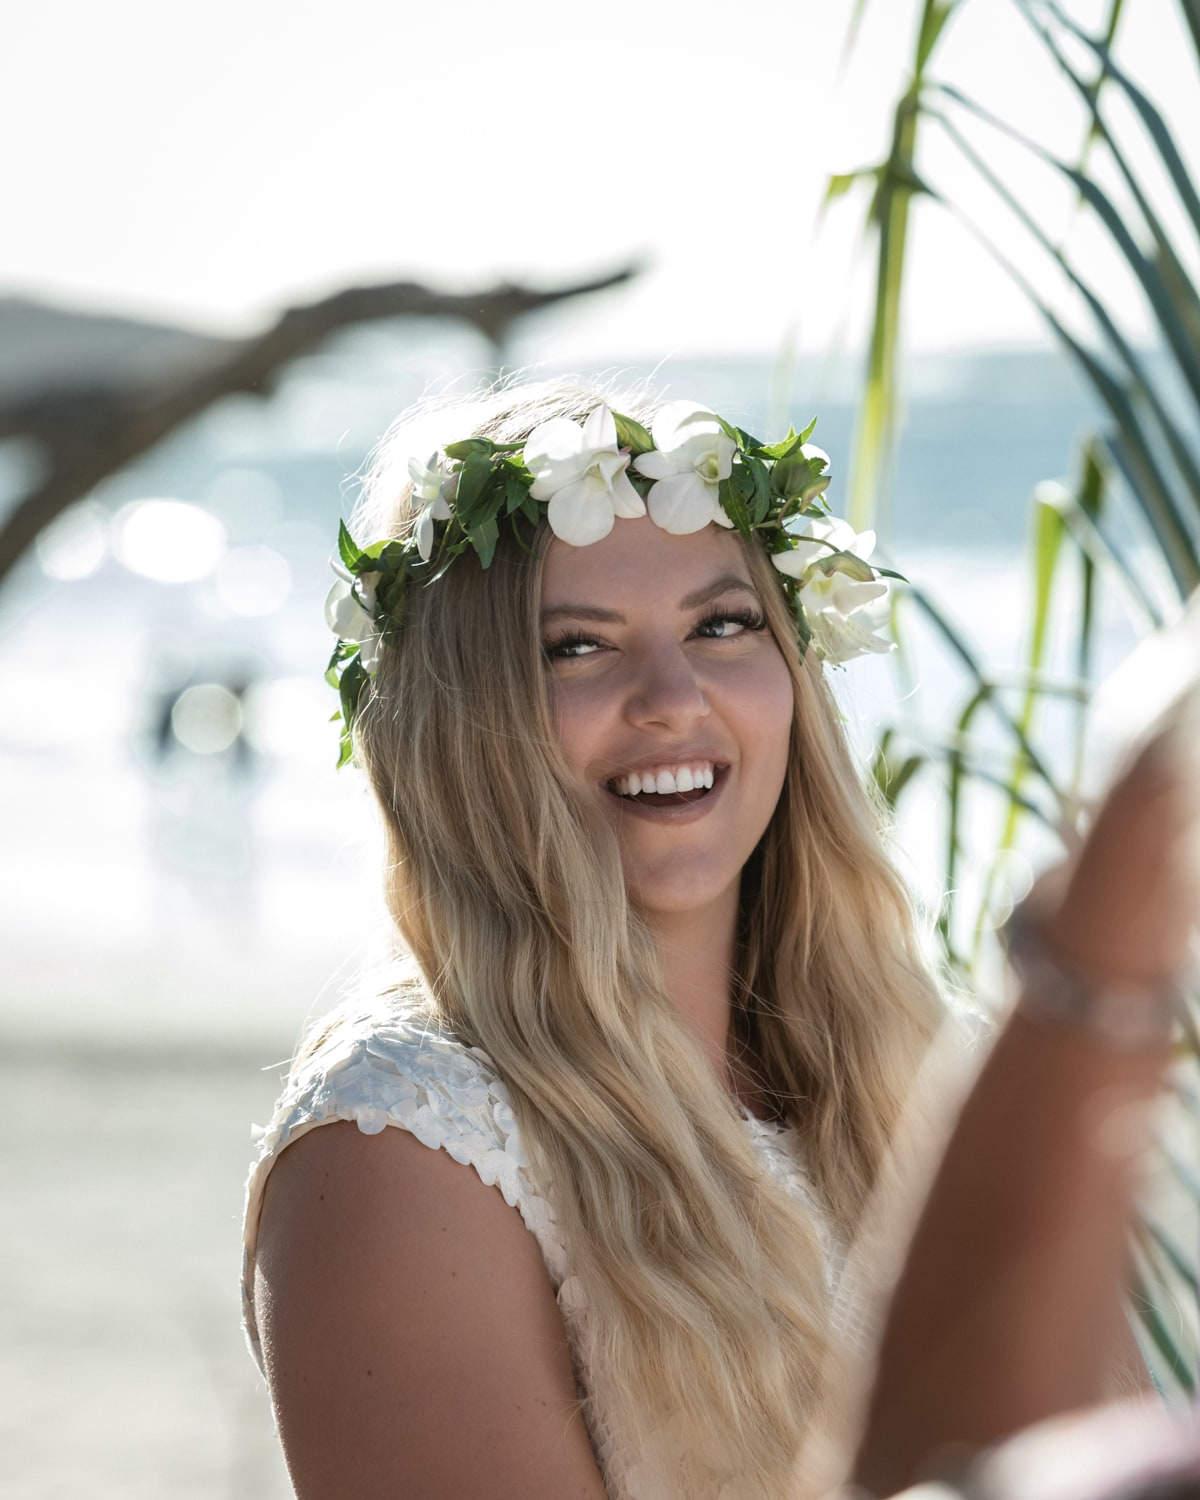 Bride wearing crown with white flowers smiles during beach wedding ceremony.